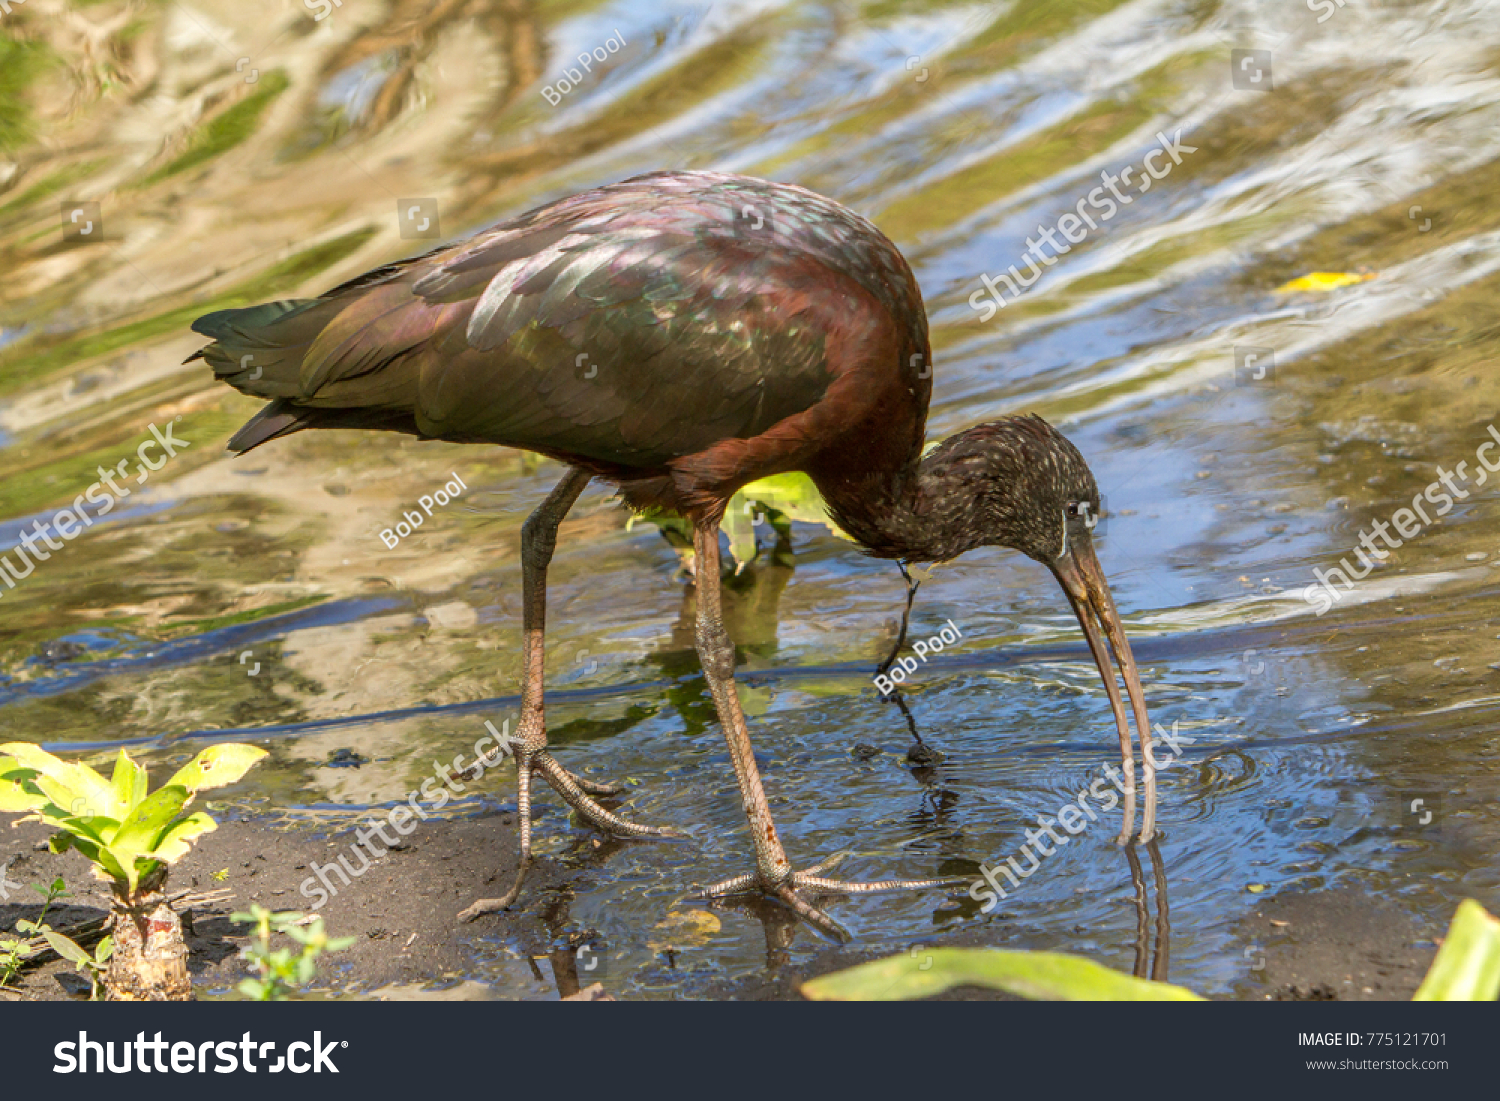 Ibis bird symbolism gallery symbol and sign ideas ibis bird symbolism image collections symbol and sign ideas glossy ibis glossy ibis wading bird stock buycottarizona